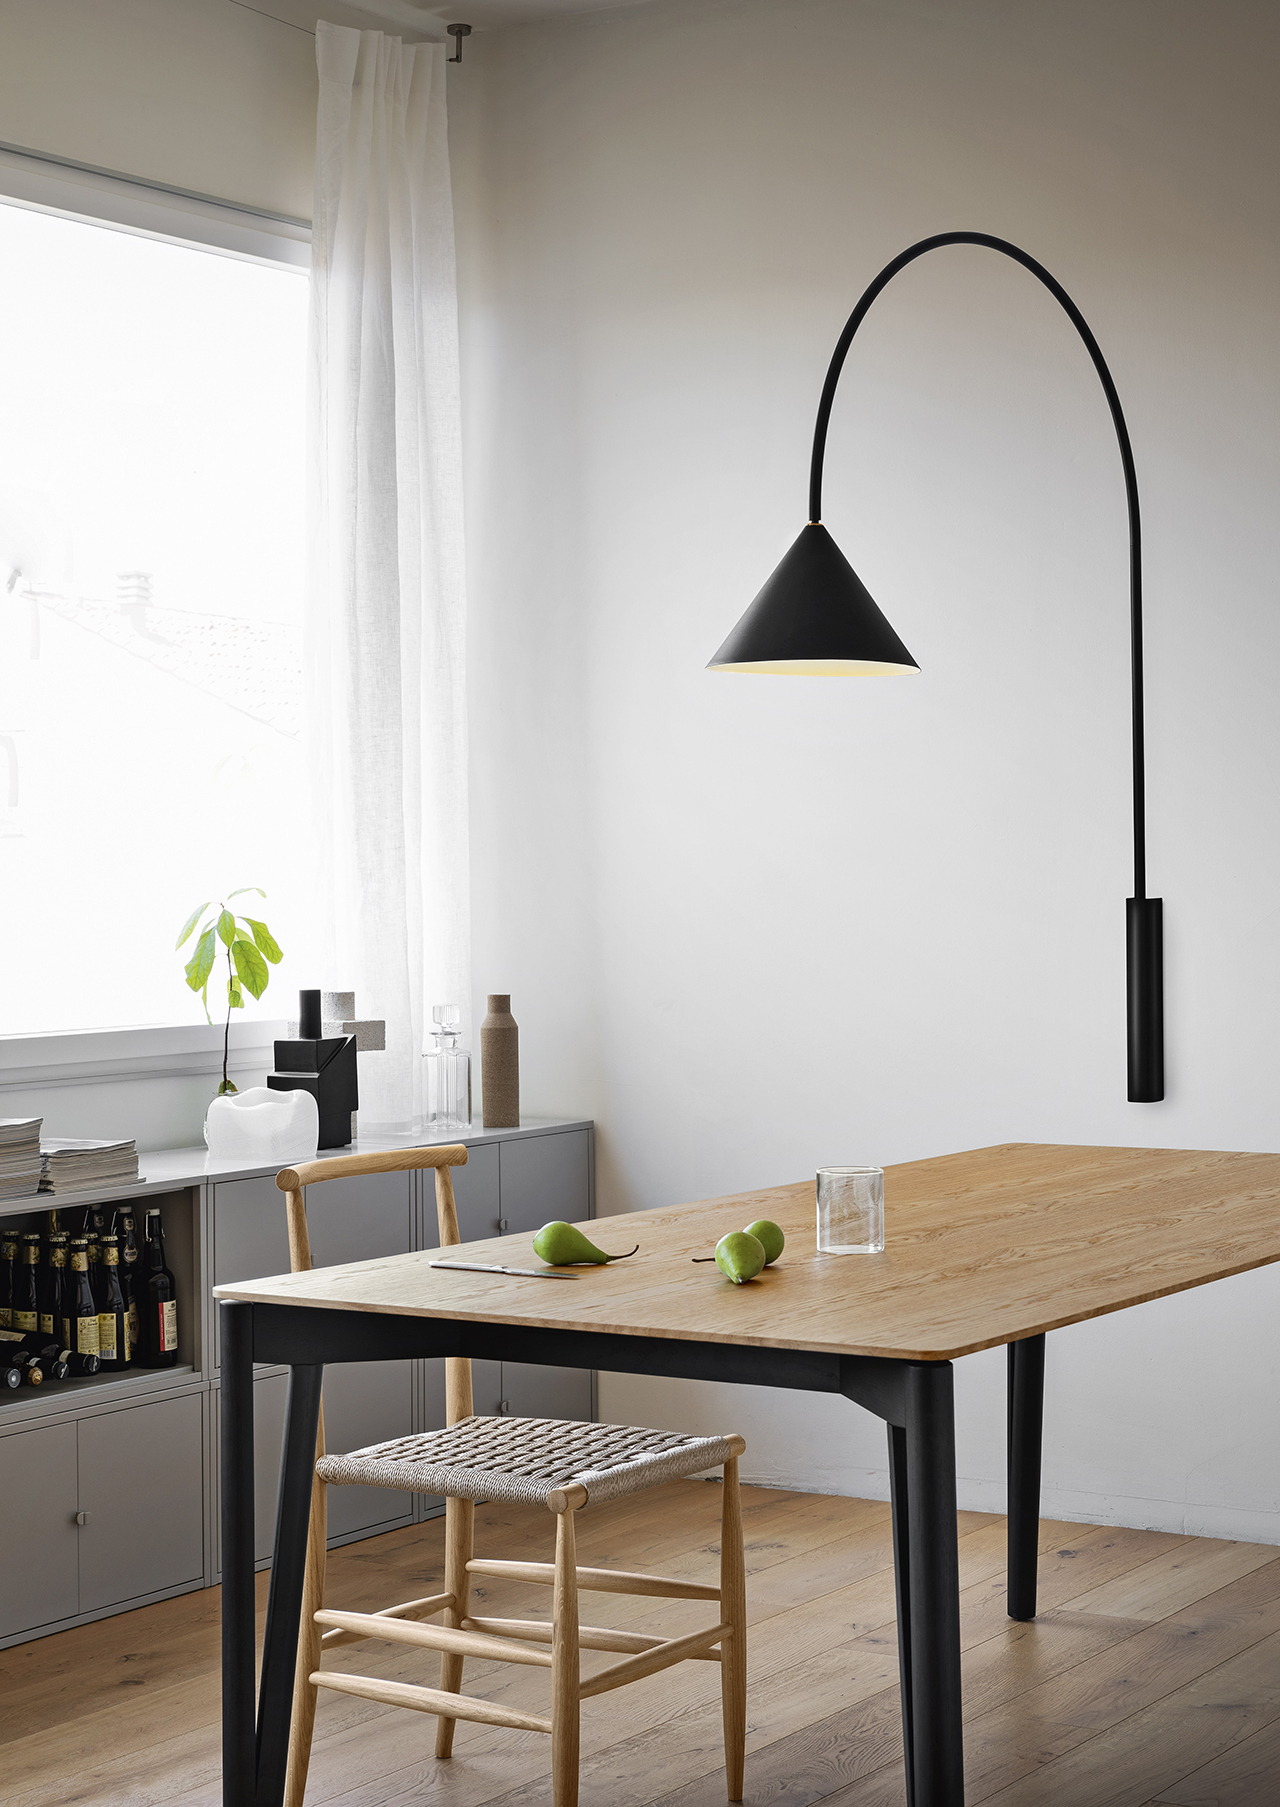 wall lamp in living space